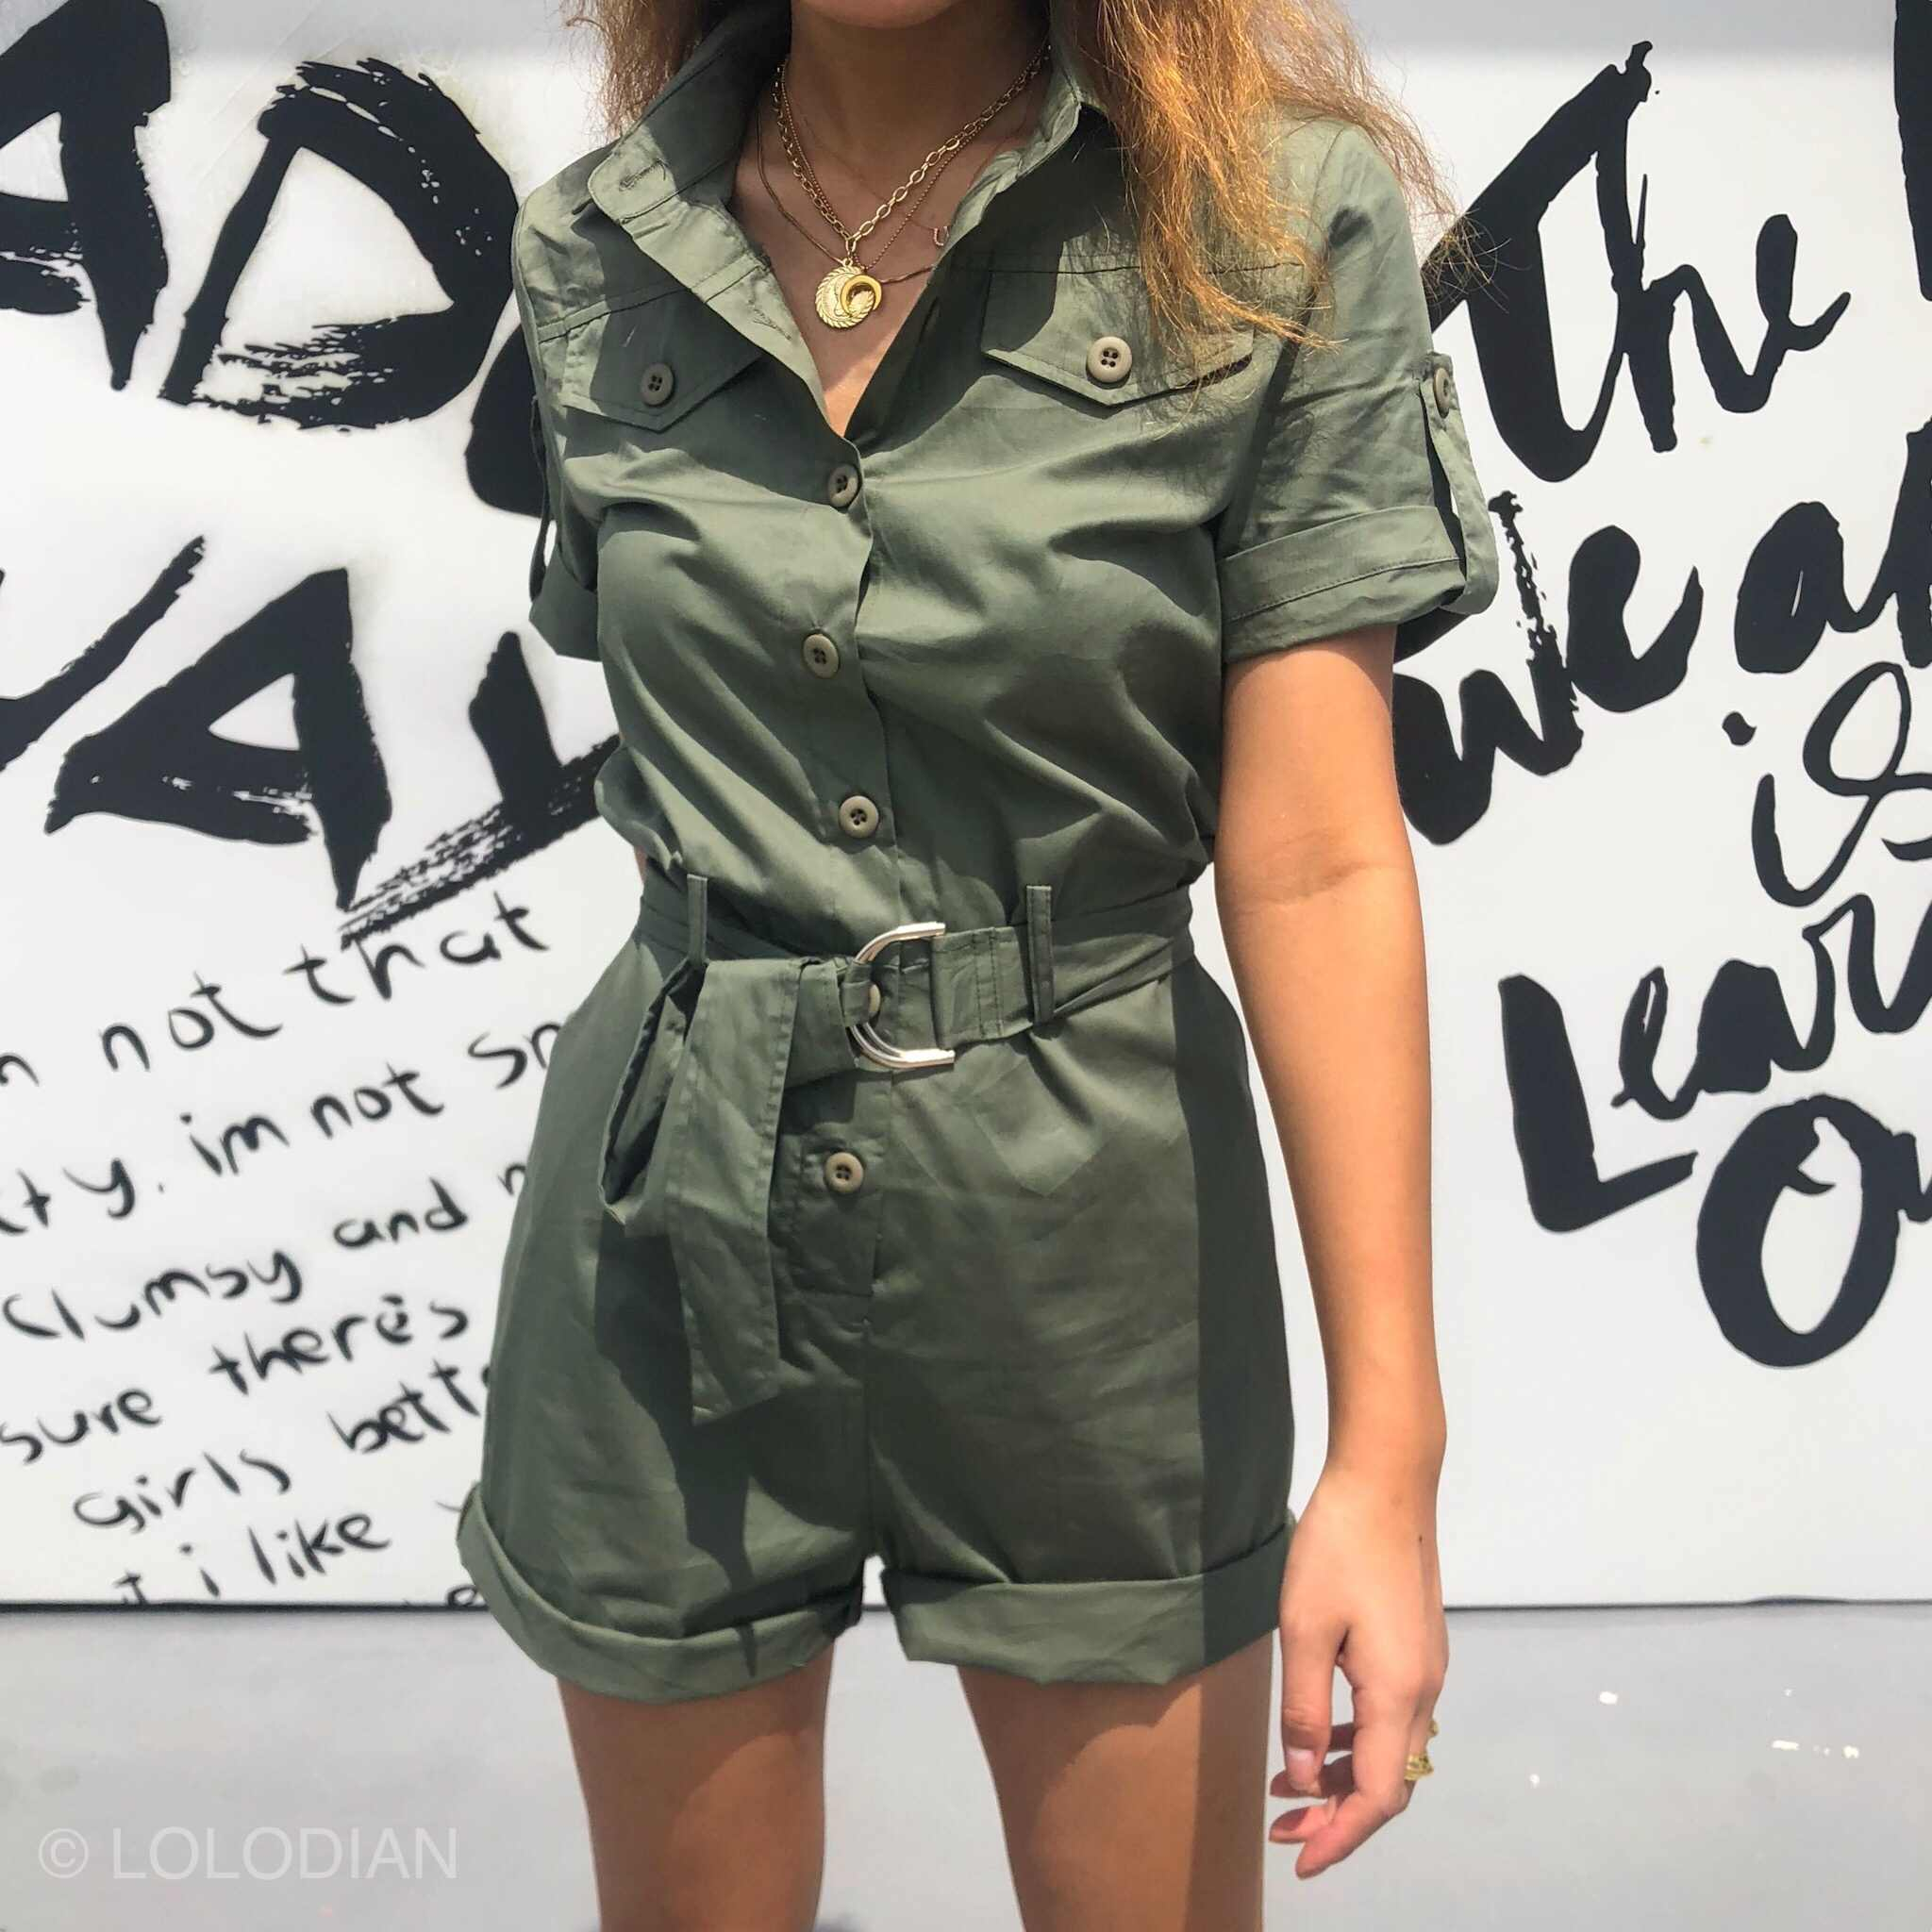 Vrouwen Casual Zomer Groene Romper met Sjerpen Hoge Taille Algehele Jumpers Pocket Belted Cargo Shorts Jumpsuit Playsuit Bodysuits